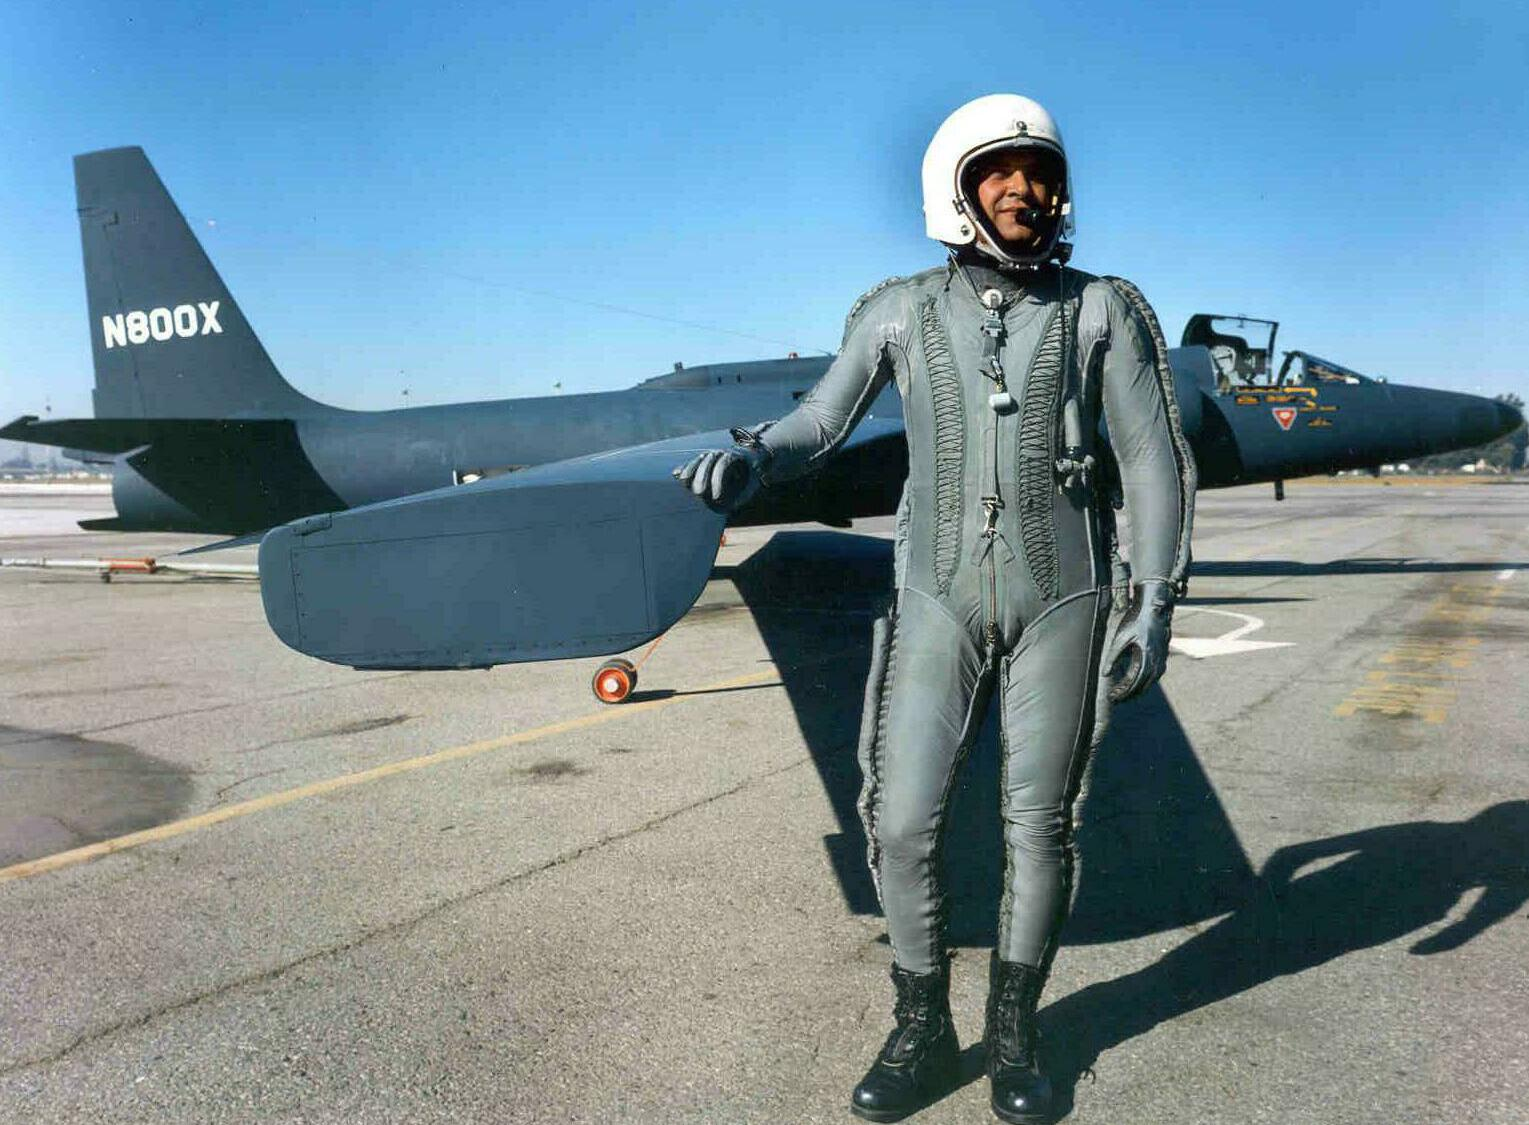 Pilot of U-2 U-2 Dragonlady Photograph of Francis Gary Powers in his G-Suit